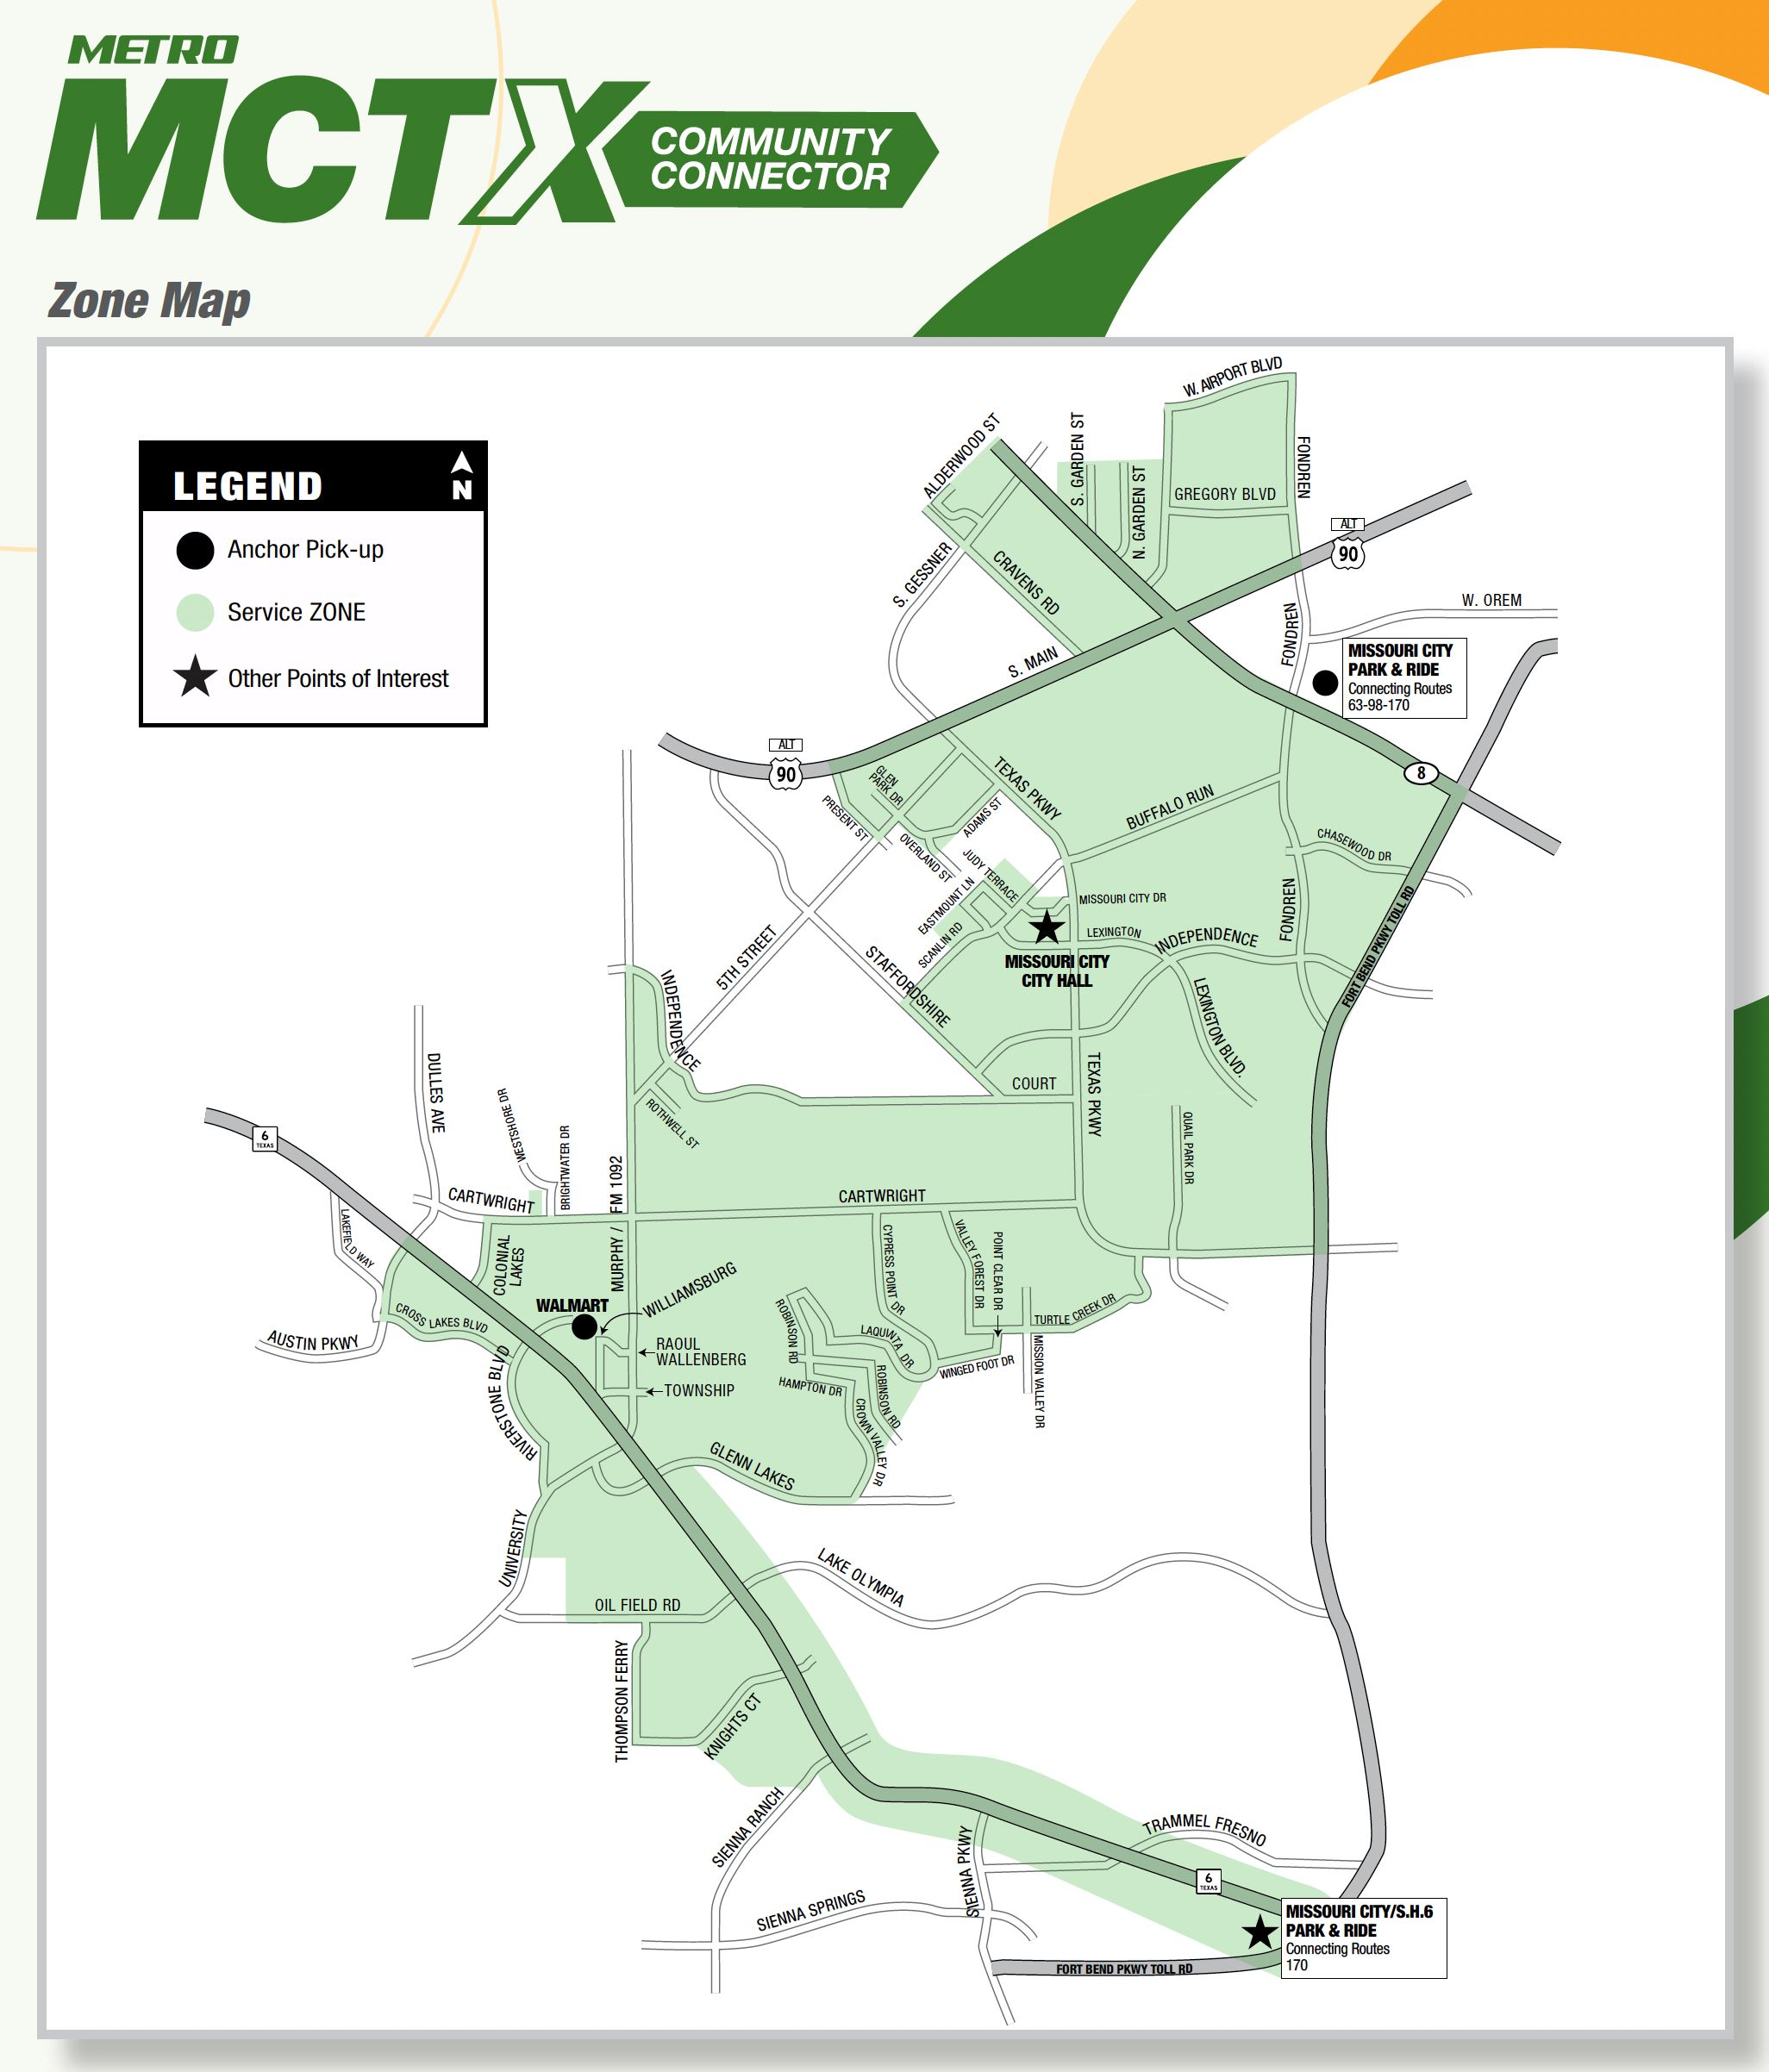 MCTX Community Connector New Map